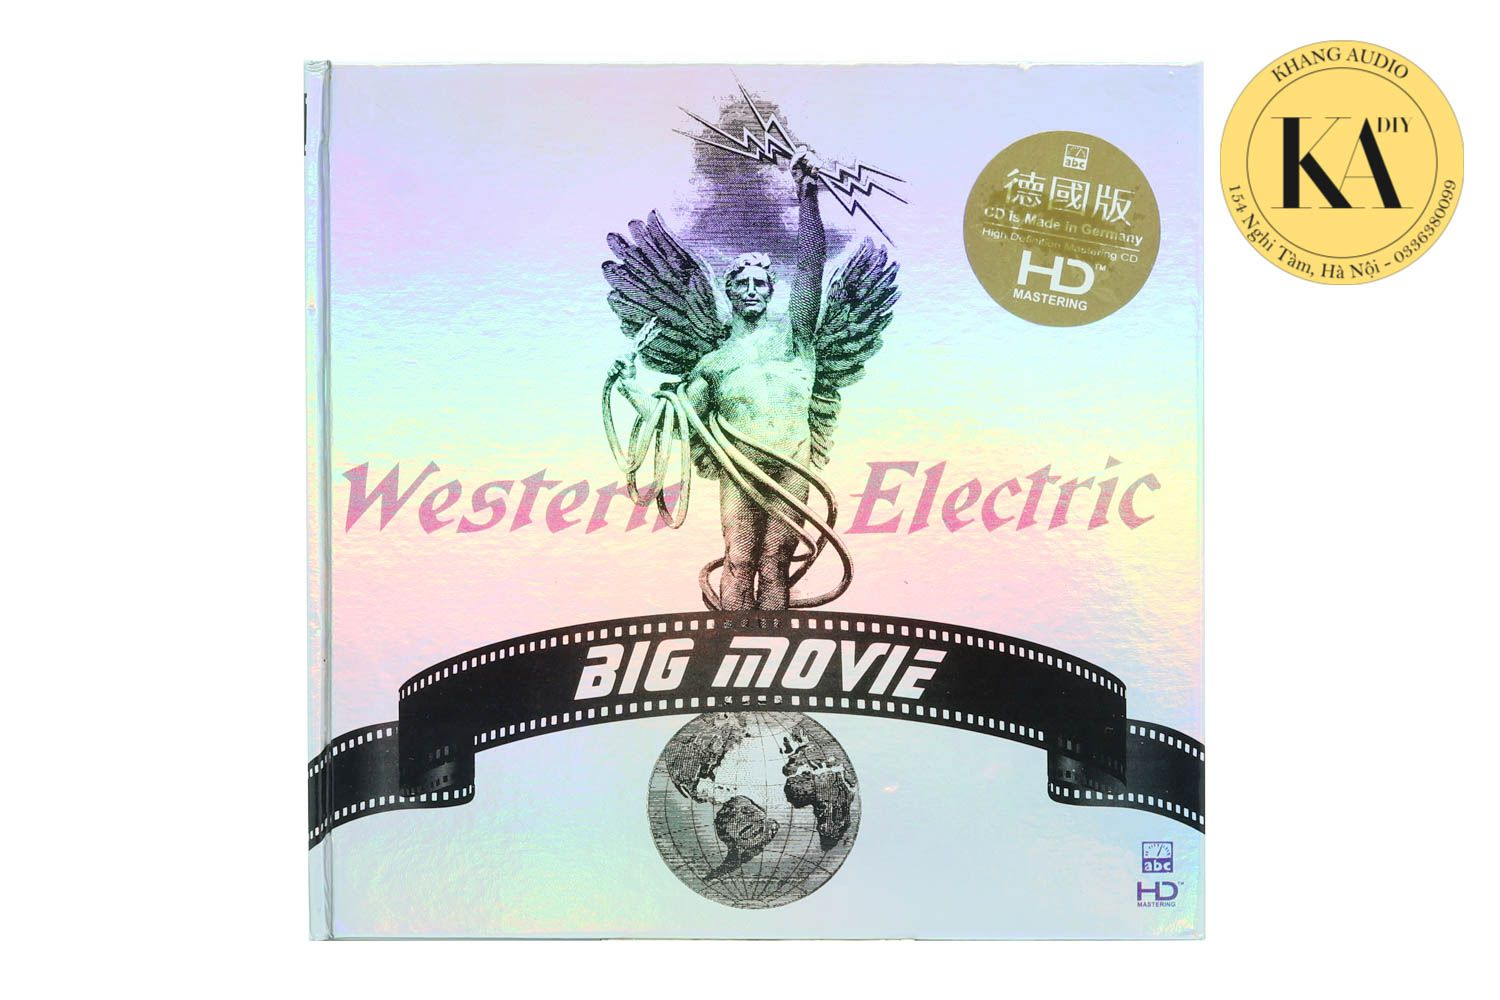 Western Electric - Big Movie HQ Khang Audio 0336380099